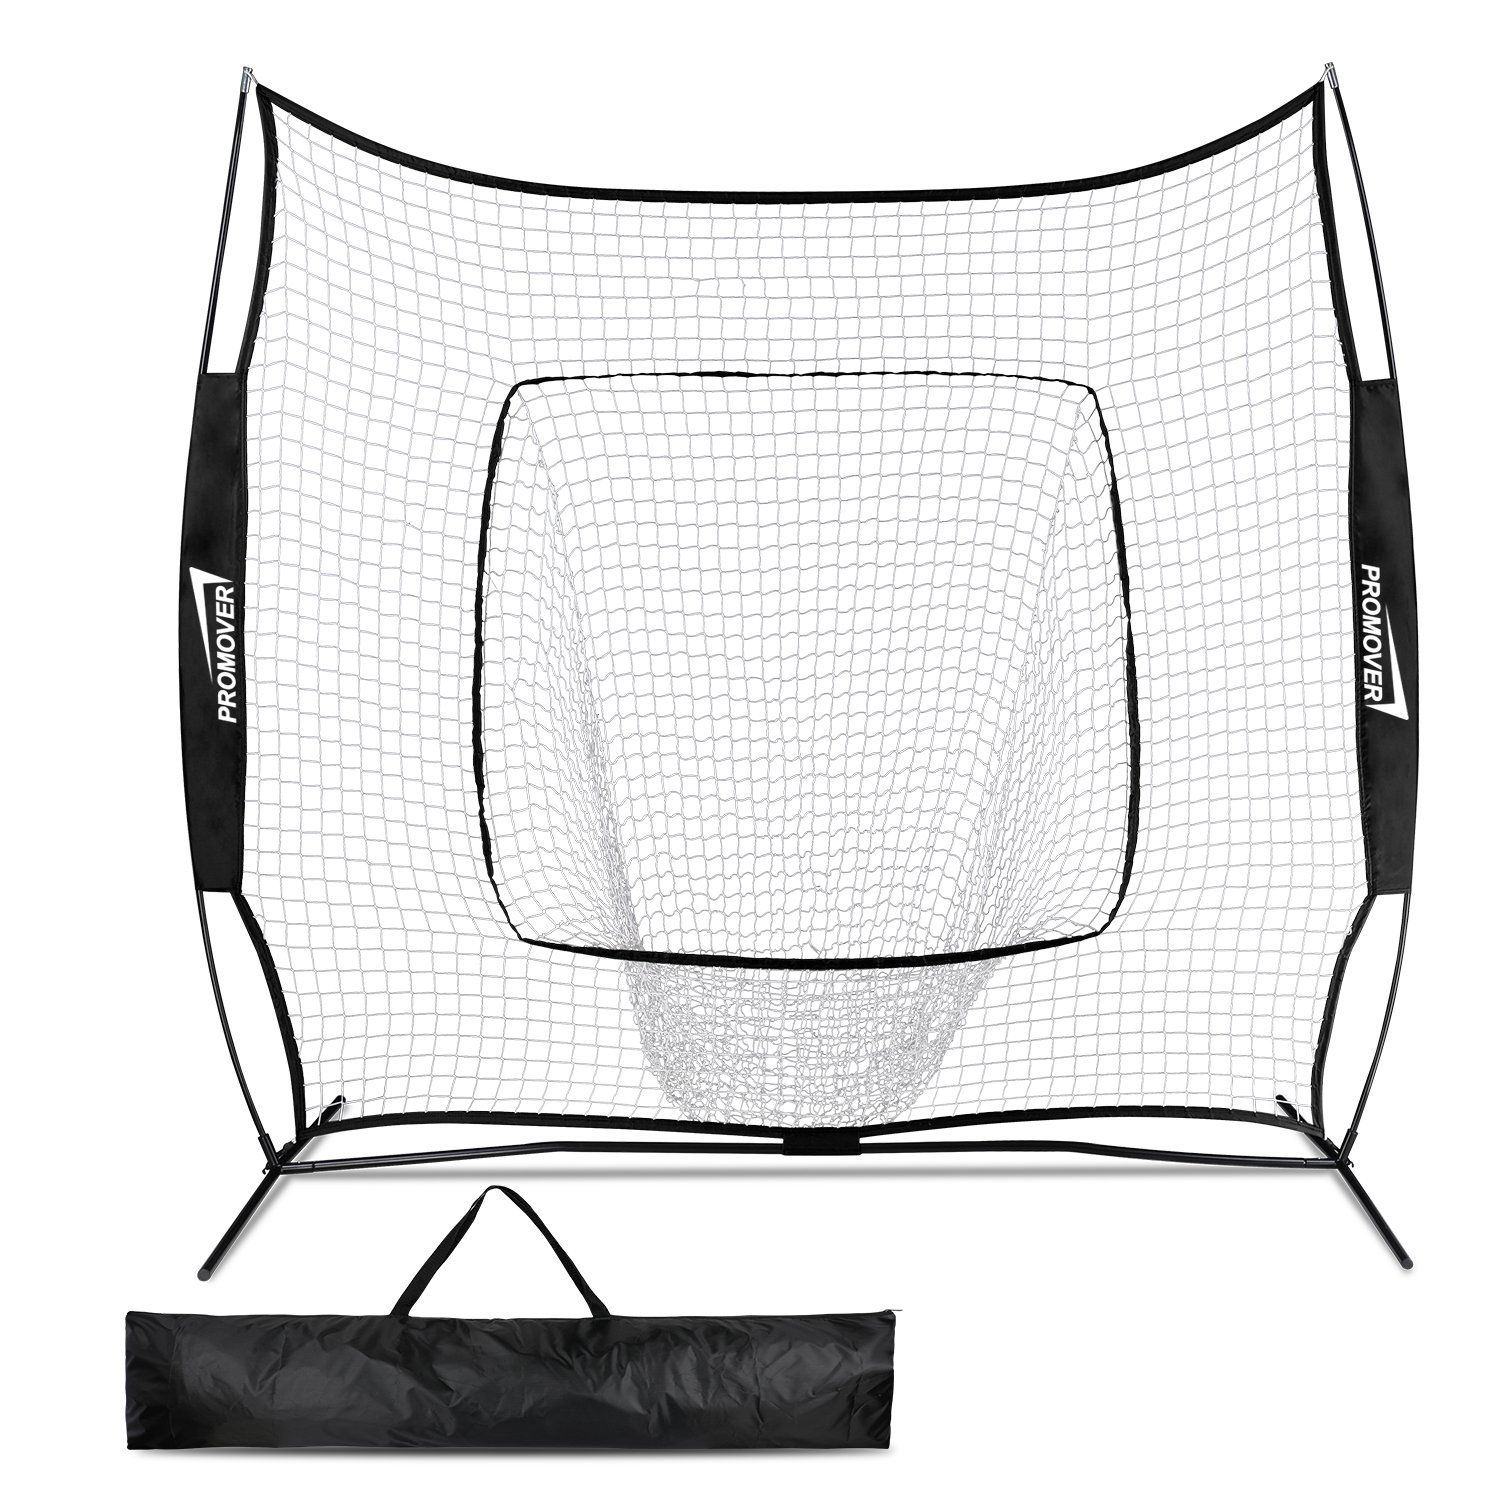 Promover Baseball Softball Practice Net 7' x 7' with Bow Frame Carry Bag for Practice Hitting, Pitching, Batting, Fielding and Catching (Black) by Promover